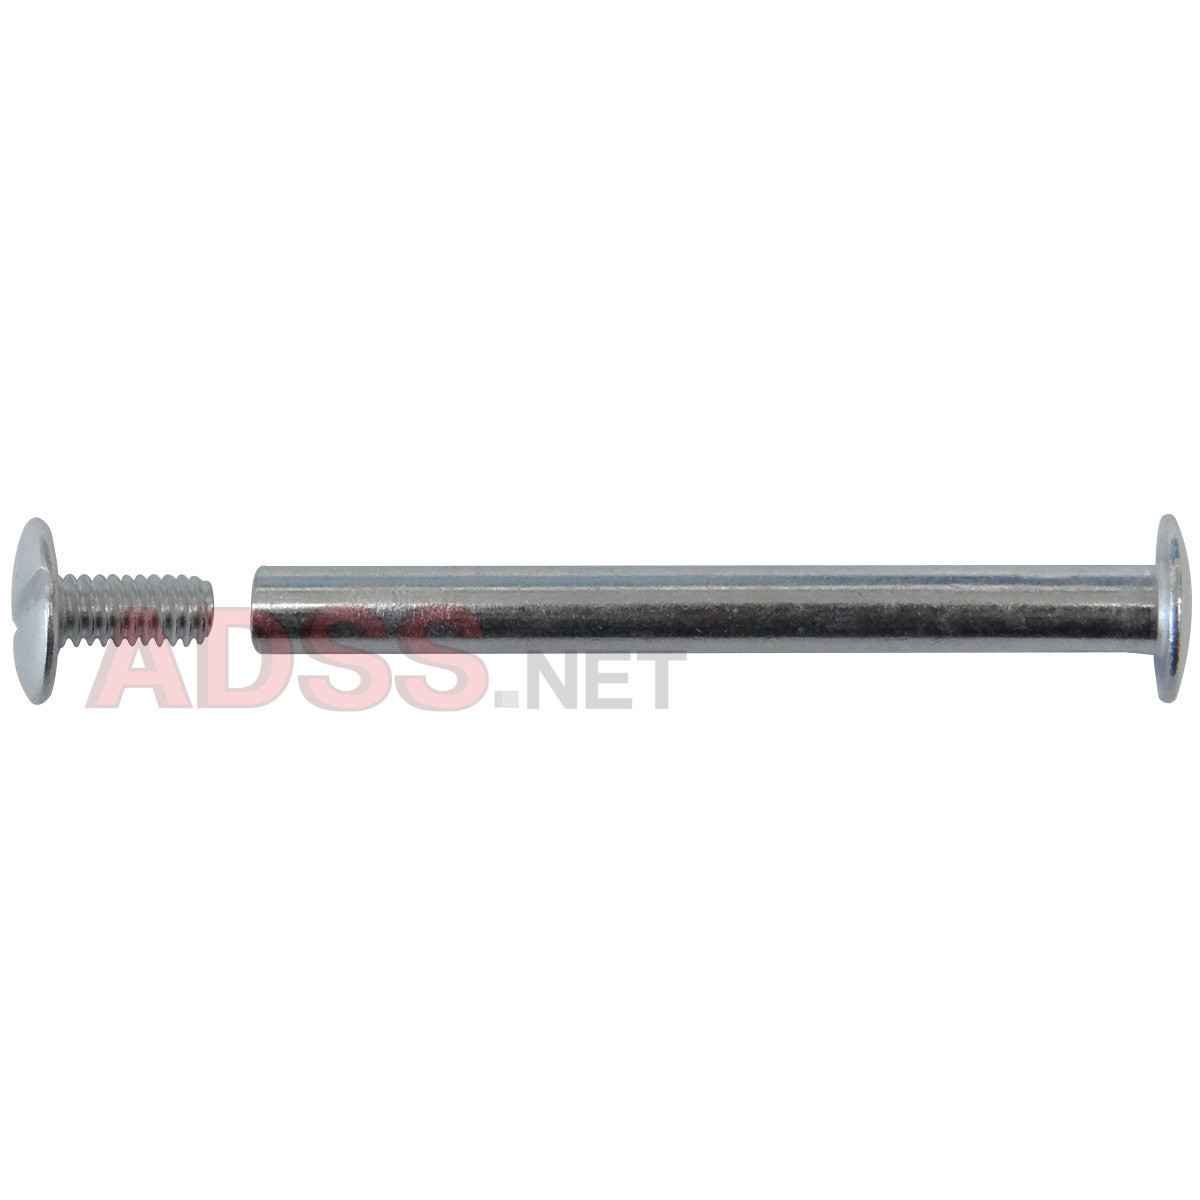 "2"" Aluminum Screw Posts <font color=177ddd><b>(100 Sets)</b></font>"